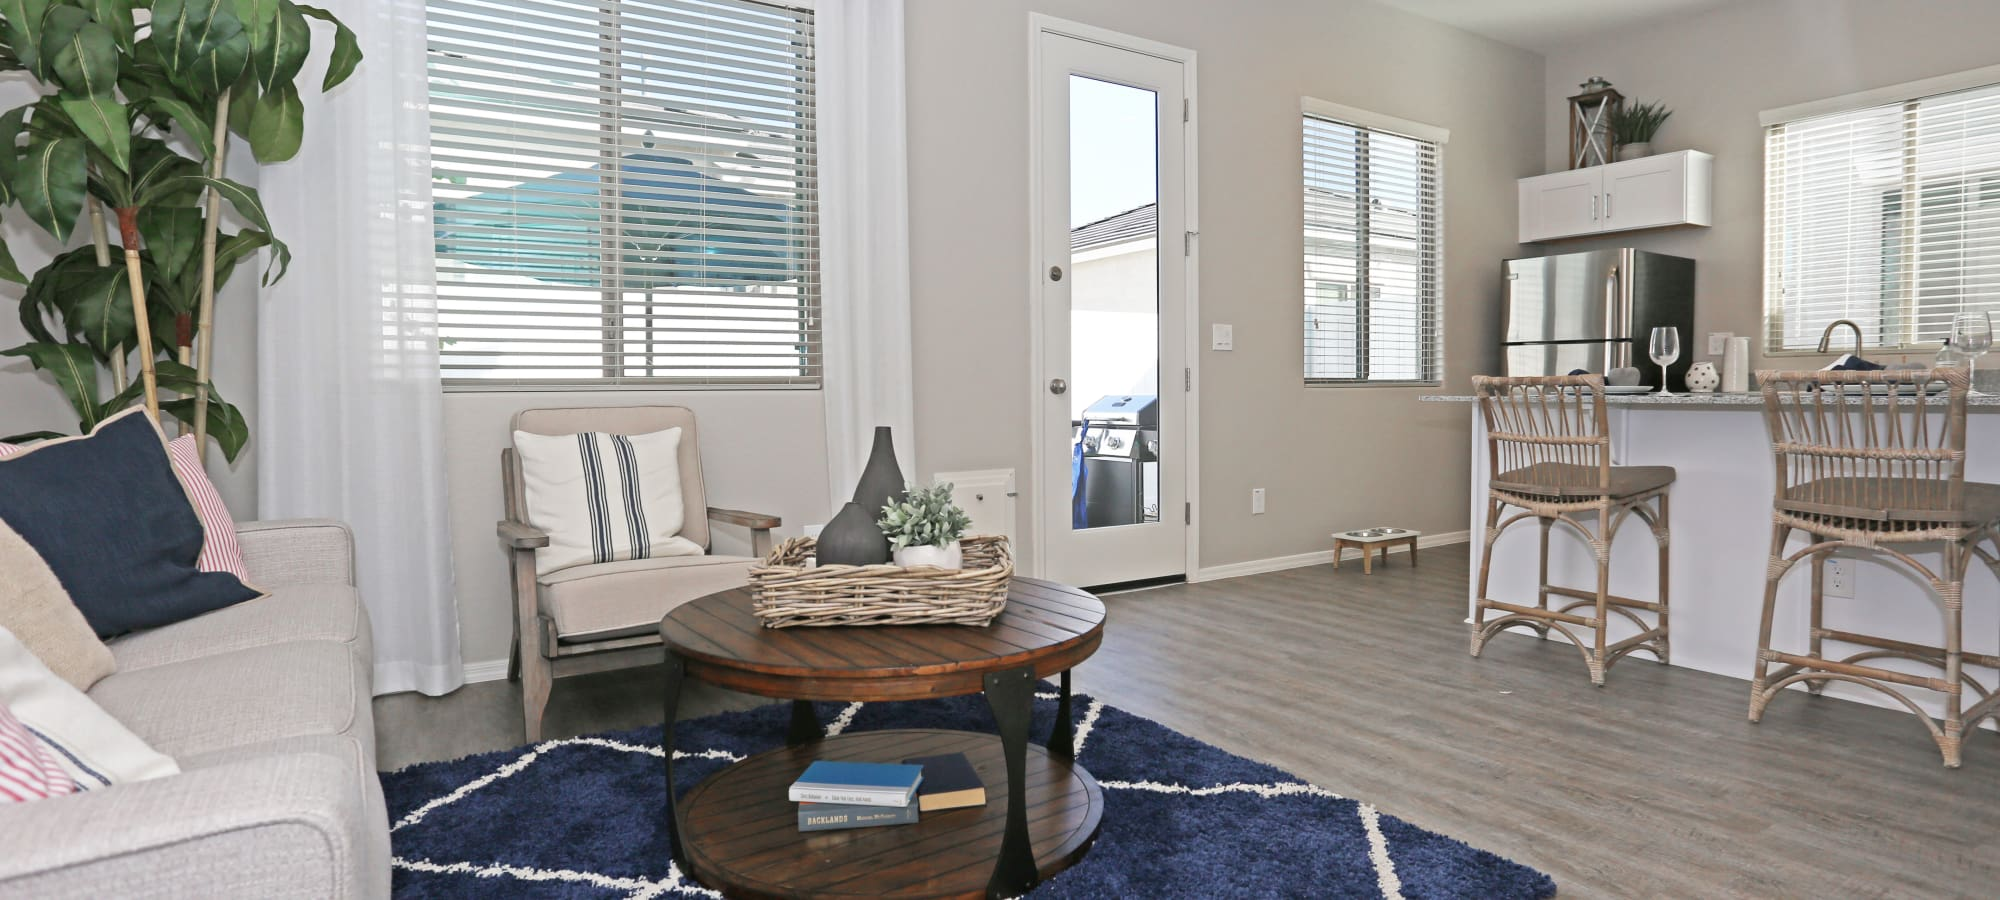 Comfortable living room in model home at Christopher Todd Communities At Stadium in Glendale, Arizona